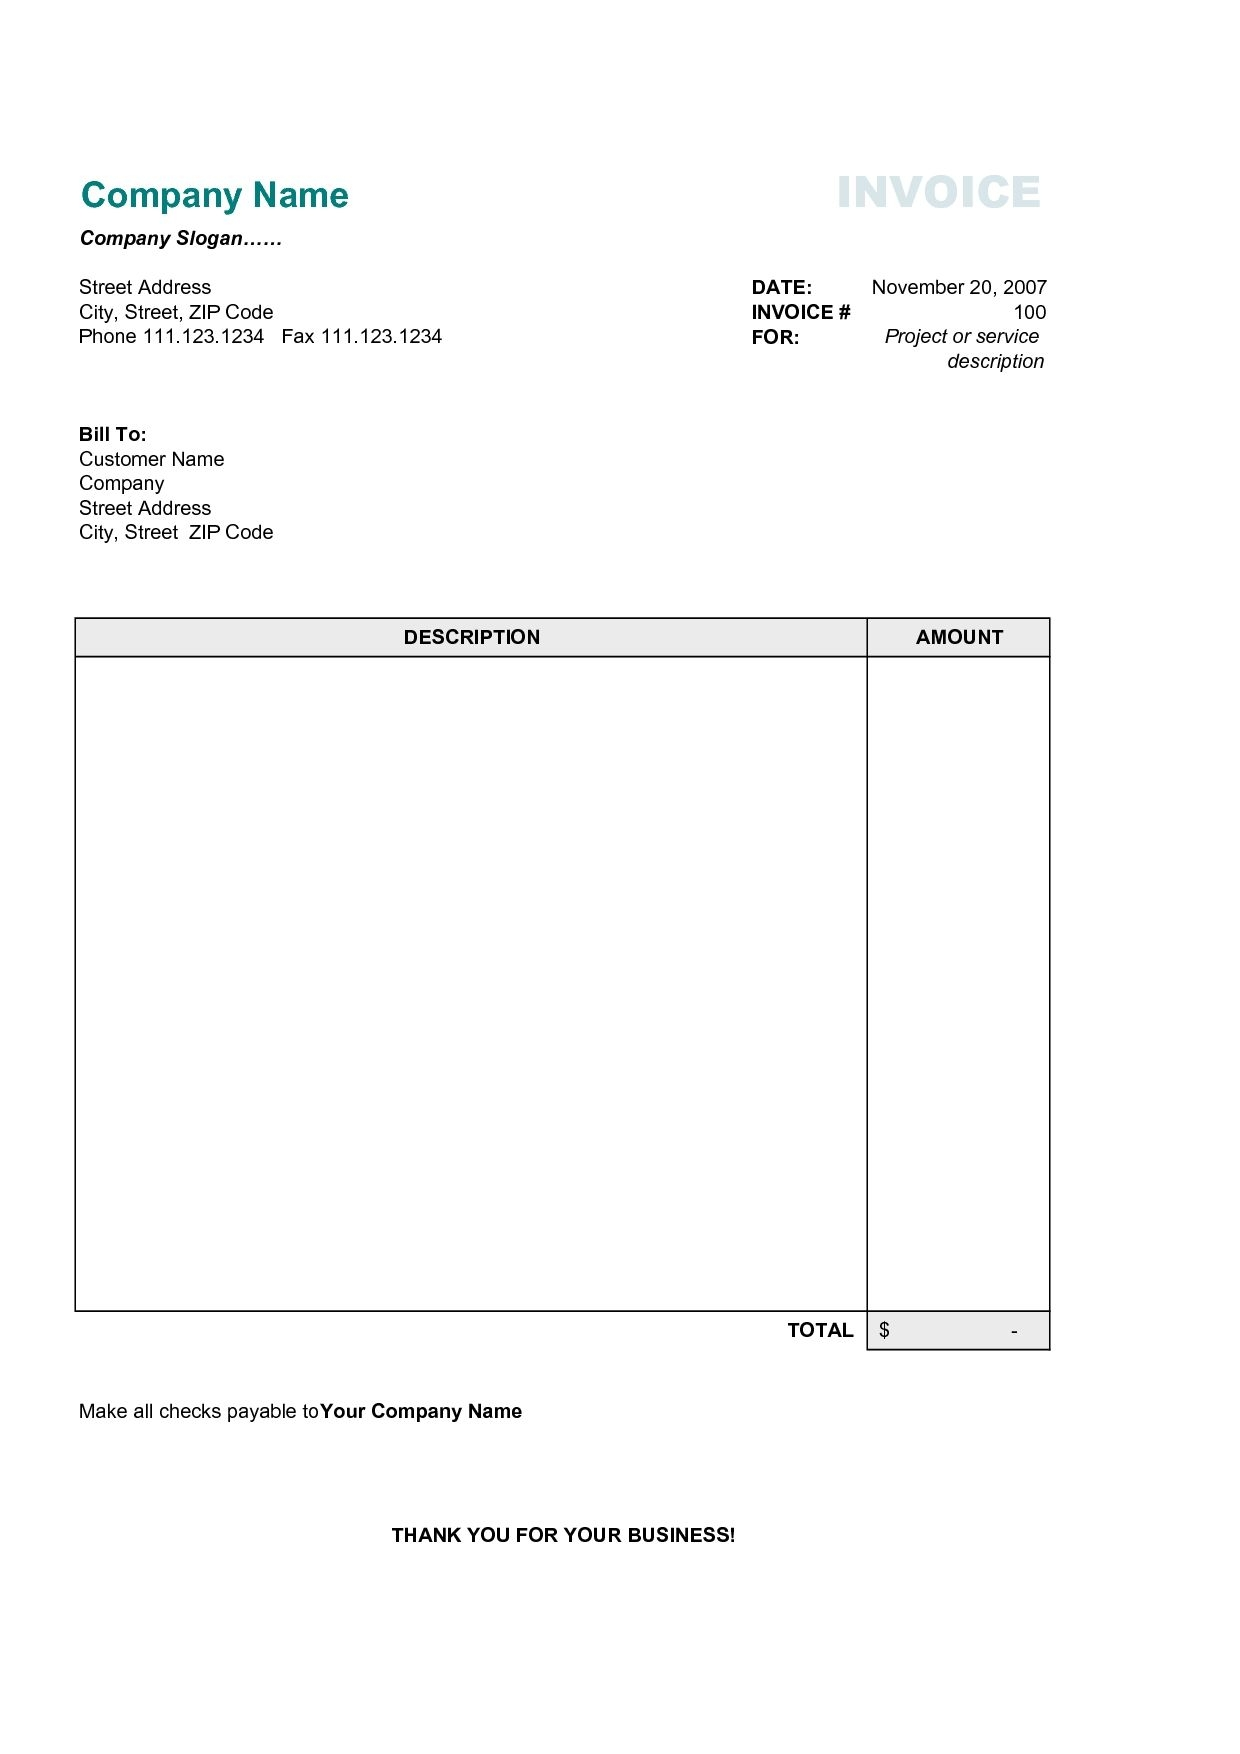 Free Business Invoice Template Best Business Template Free Invoice